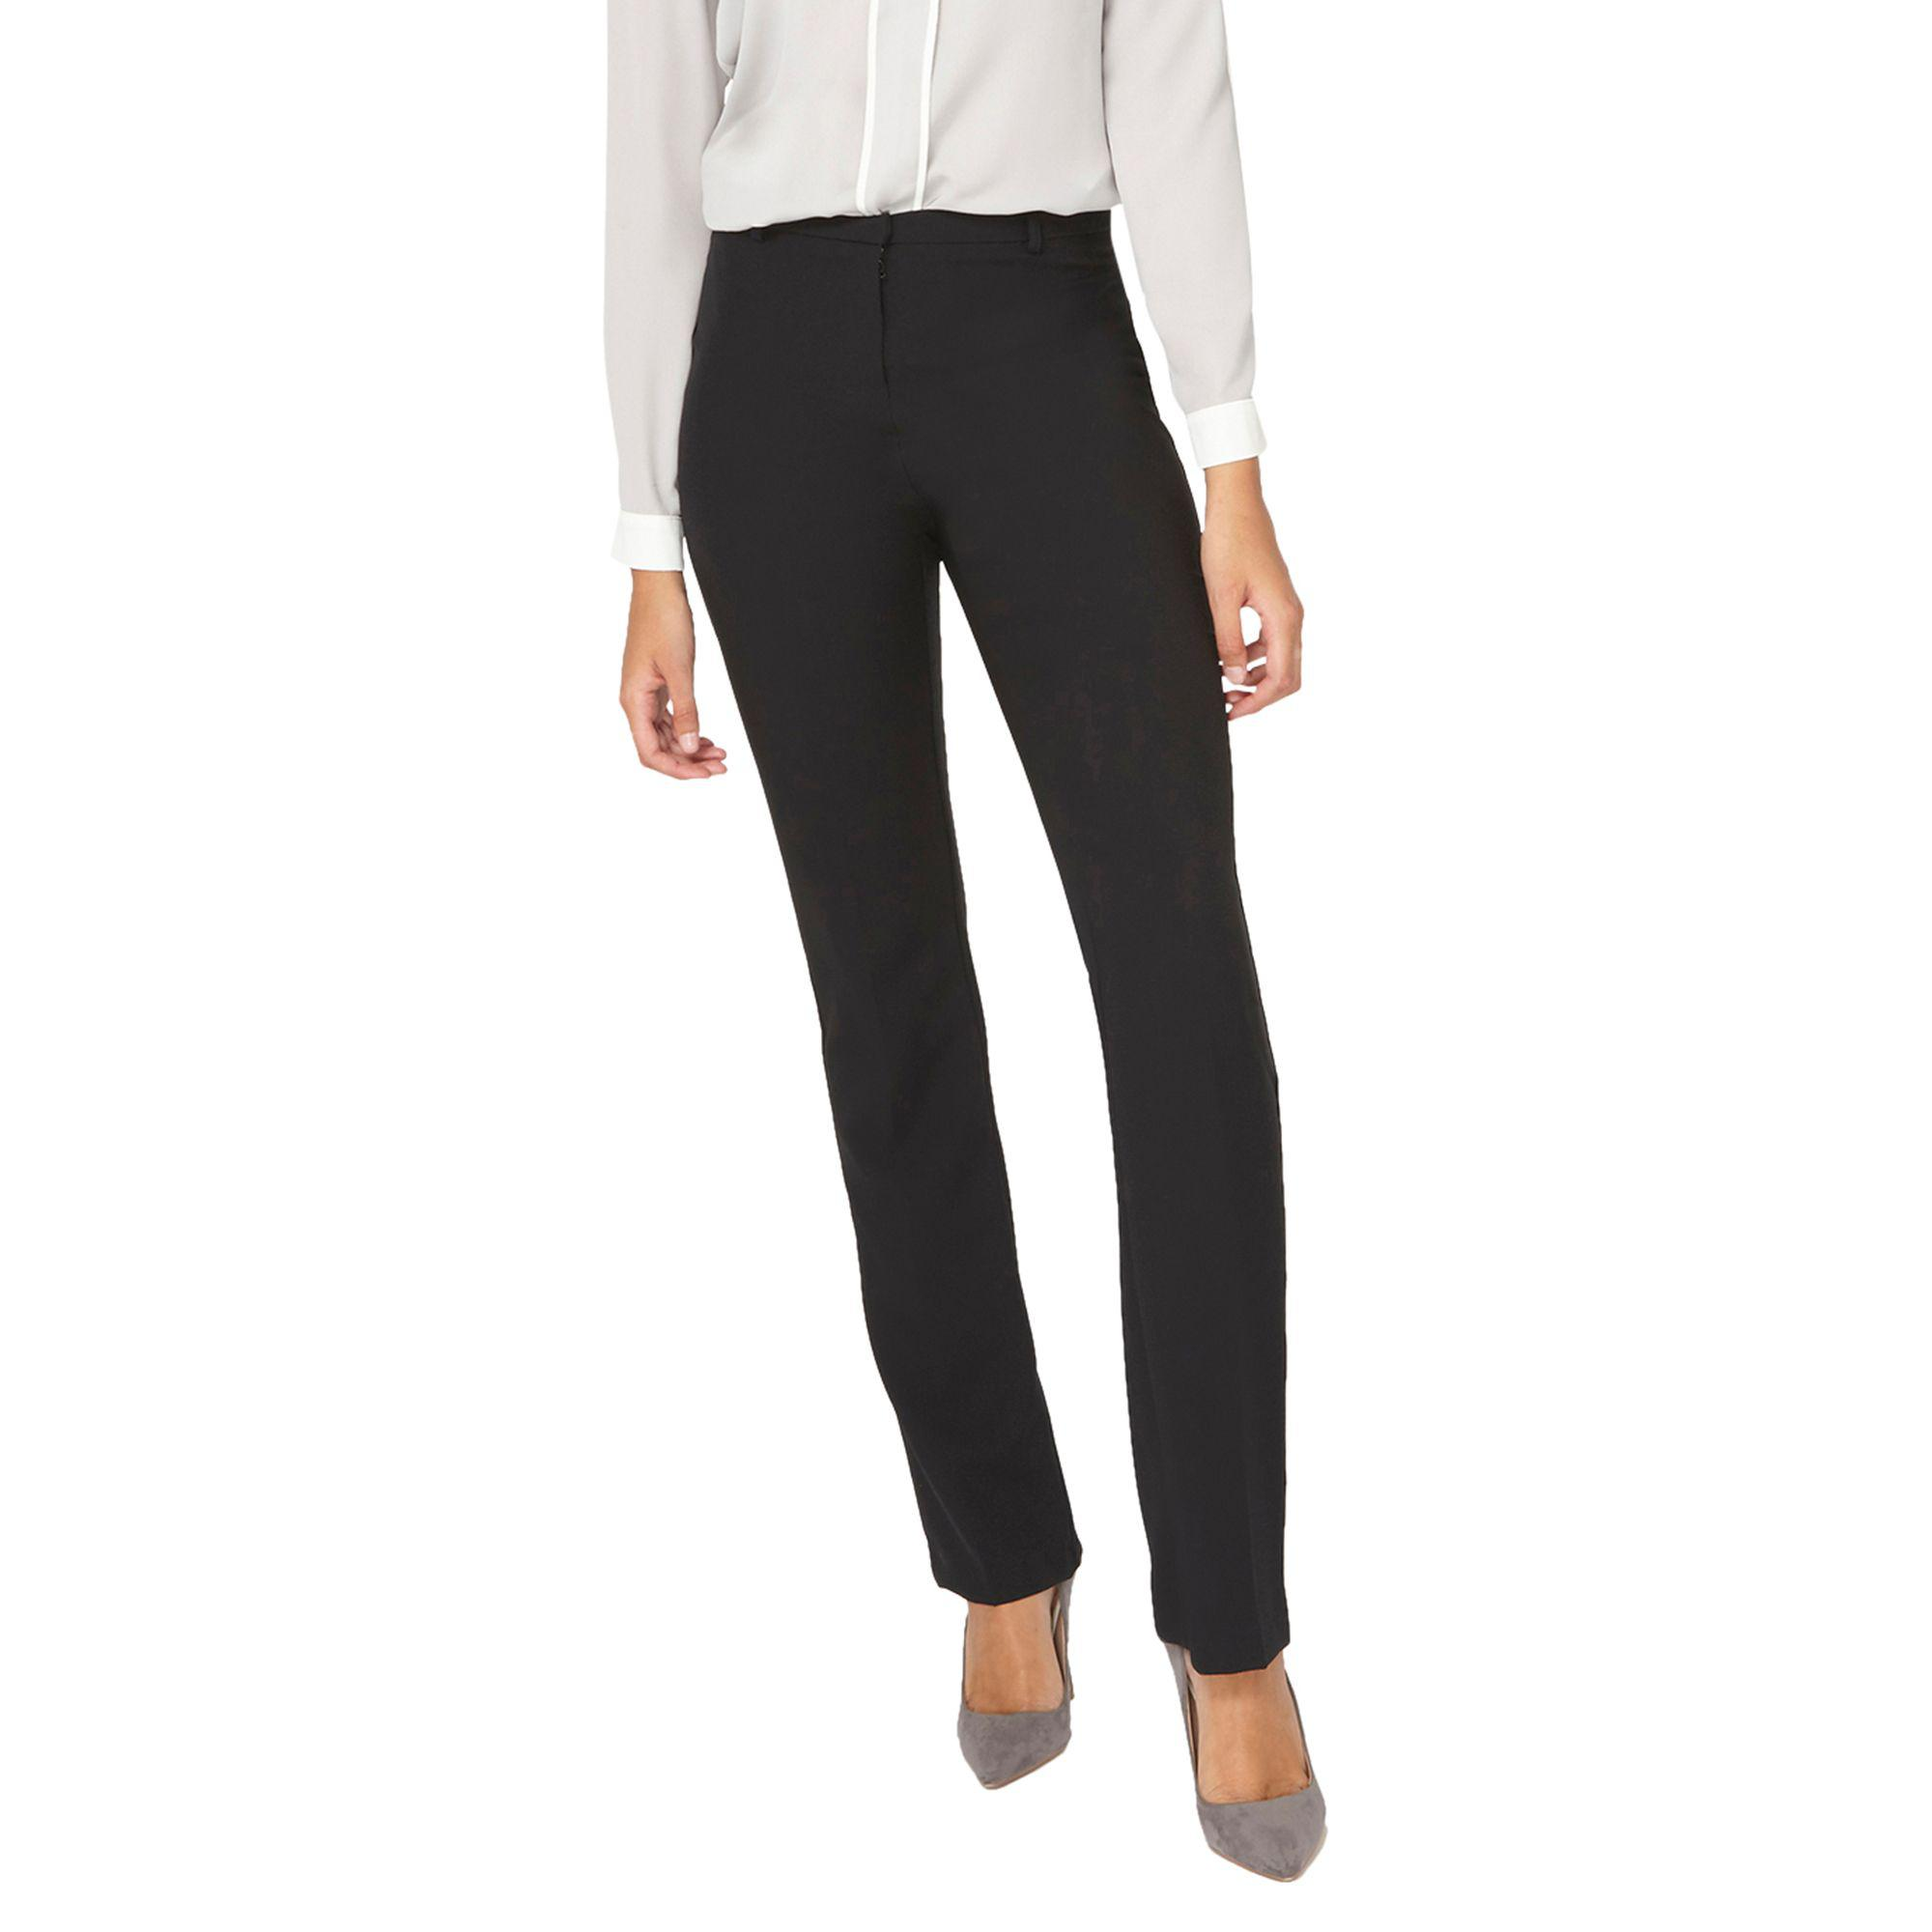 39c52102a8716 Dorothy Perkins **tall Black Slim Leg Bootcut Trousers in Black - Lyst